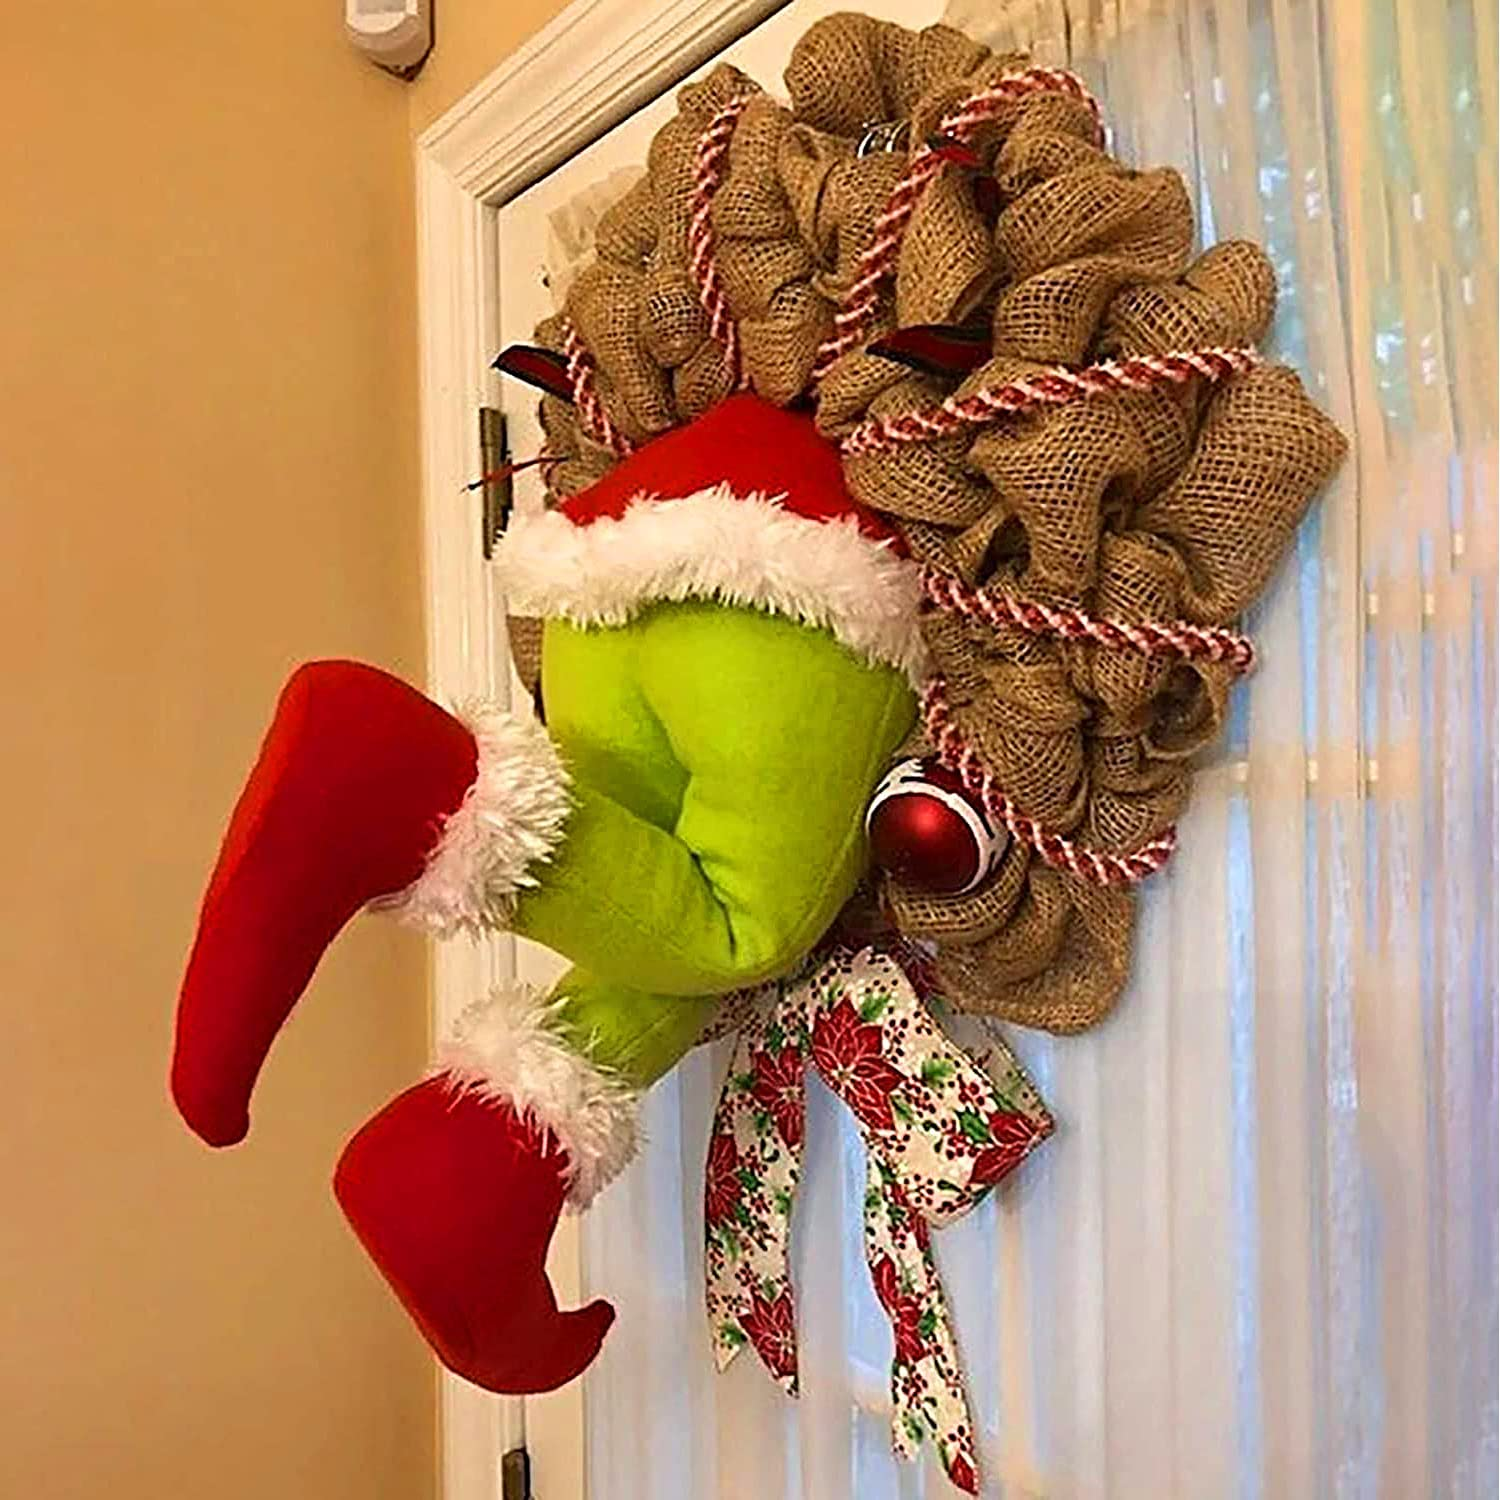 GJGBIVI The Thief Christmas Easy-to-use Wreath Gifts Stole Grinch Christm How